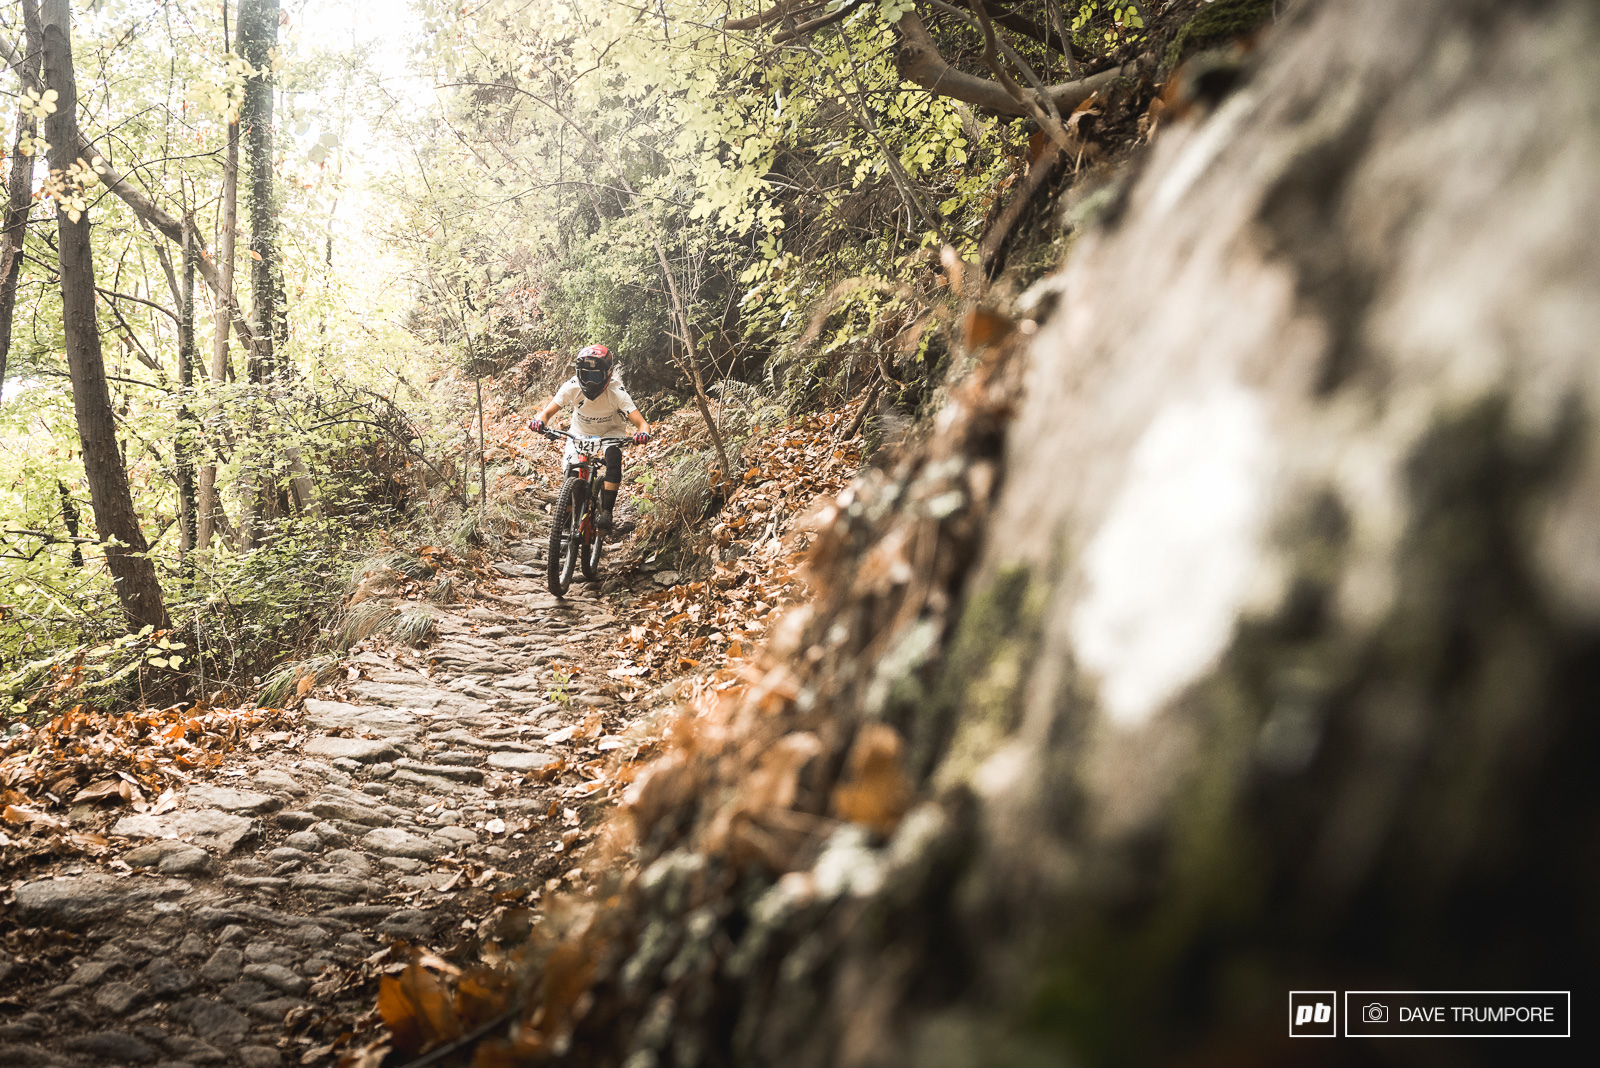 Hannah Barnes descends the rough old cobblestone road that makes up the final section of stage 1.